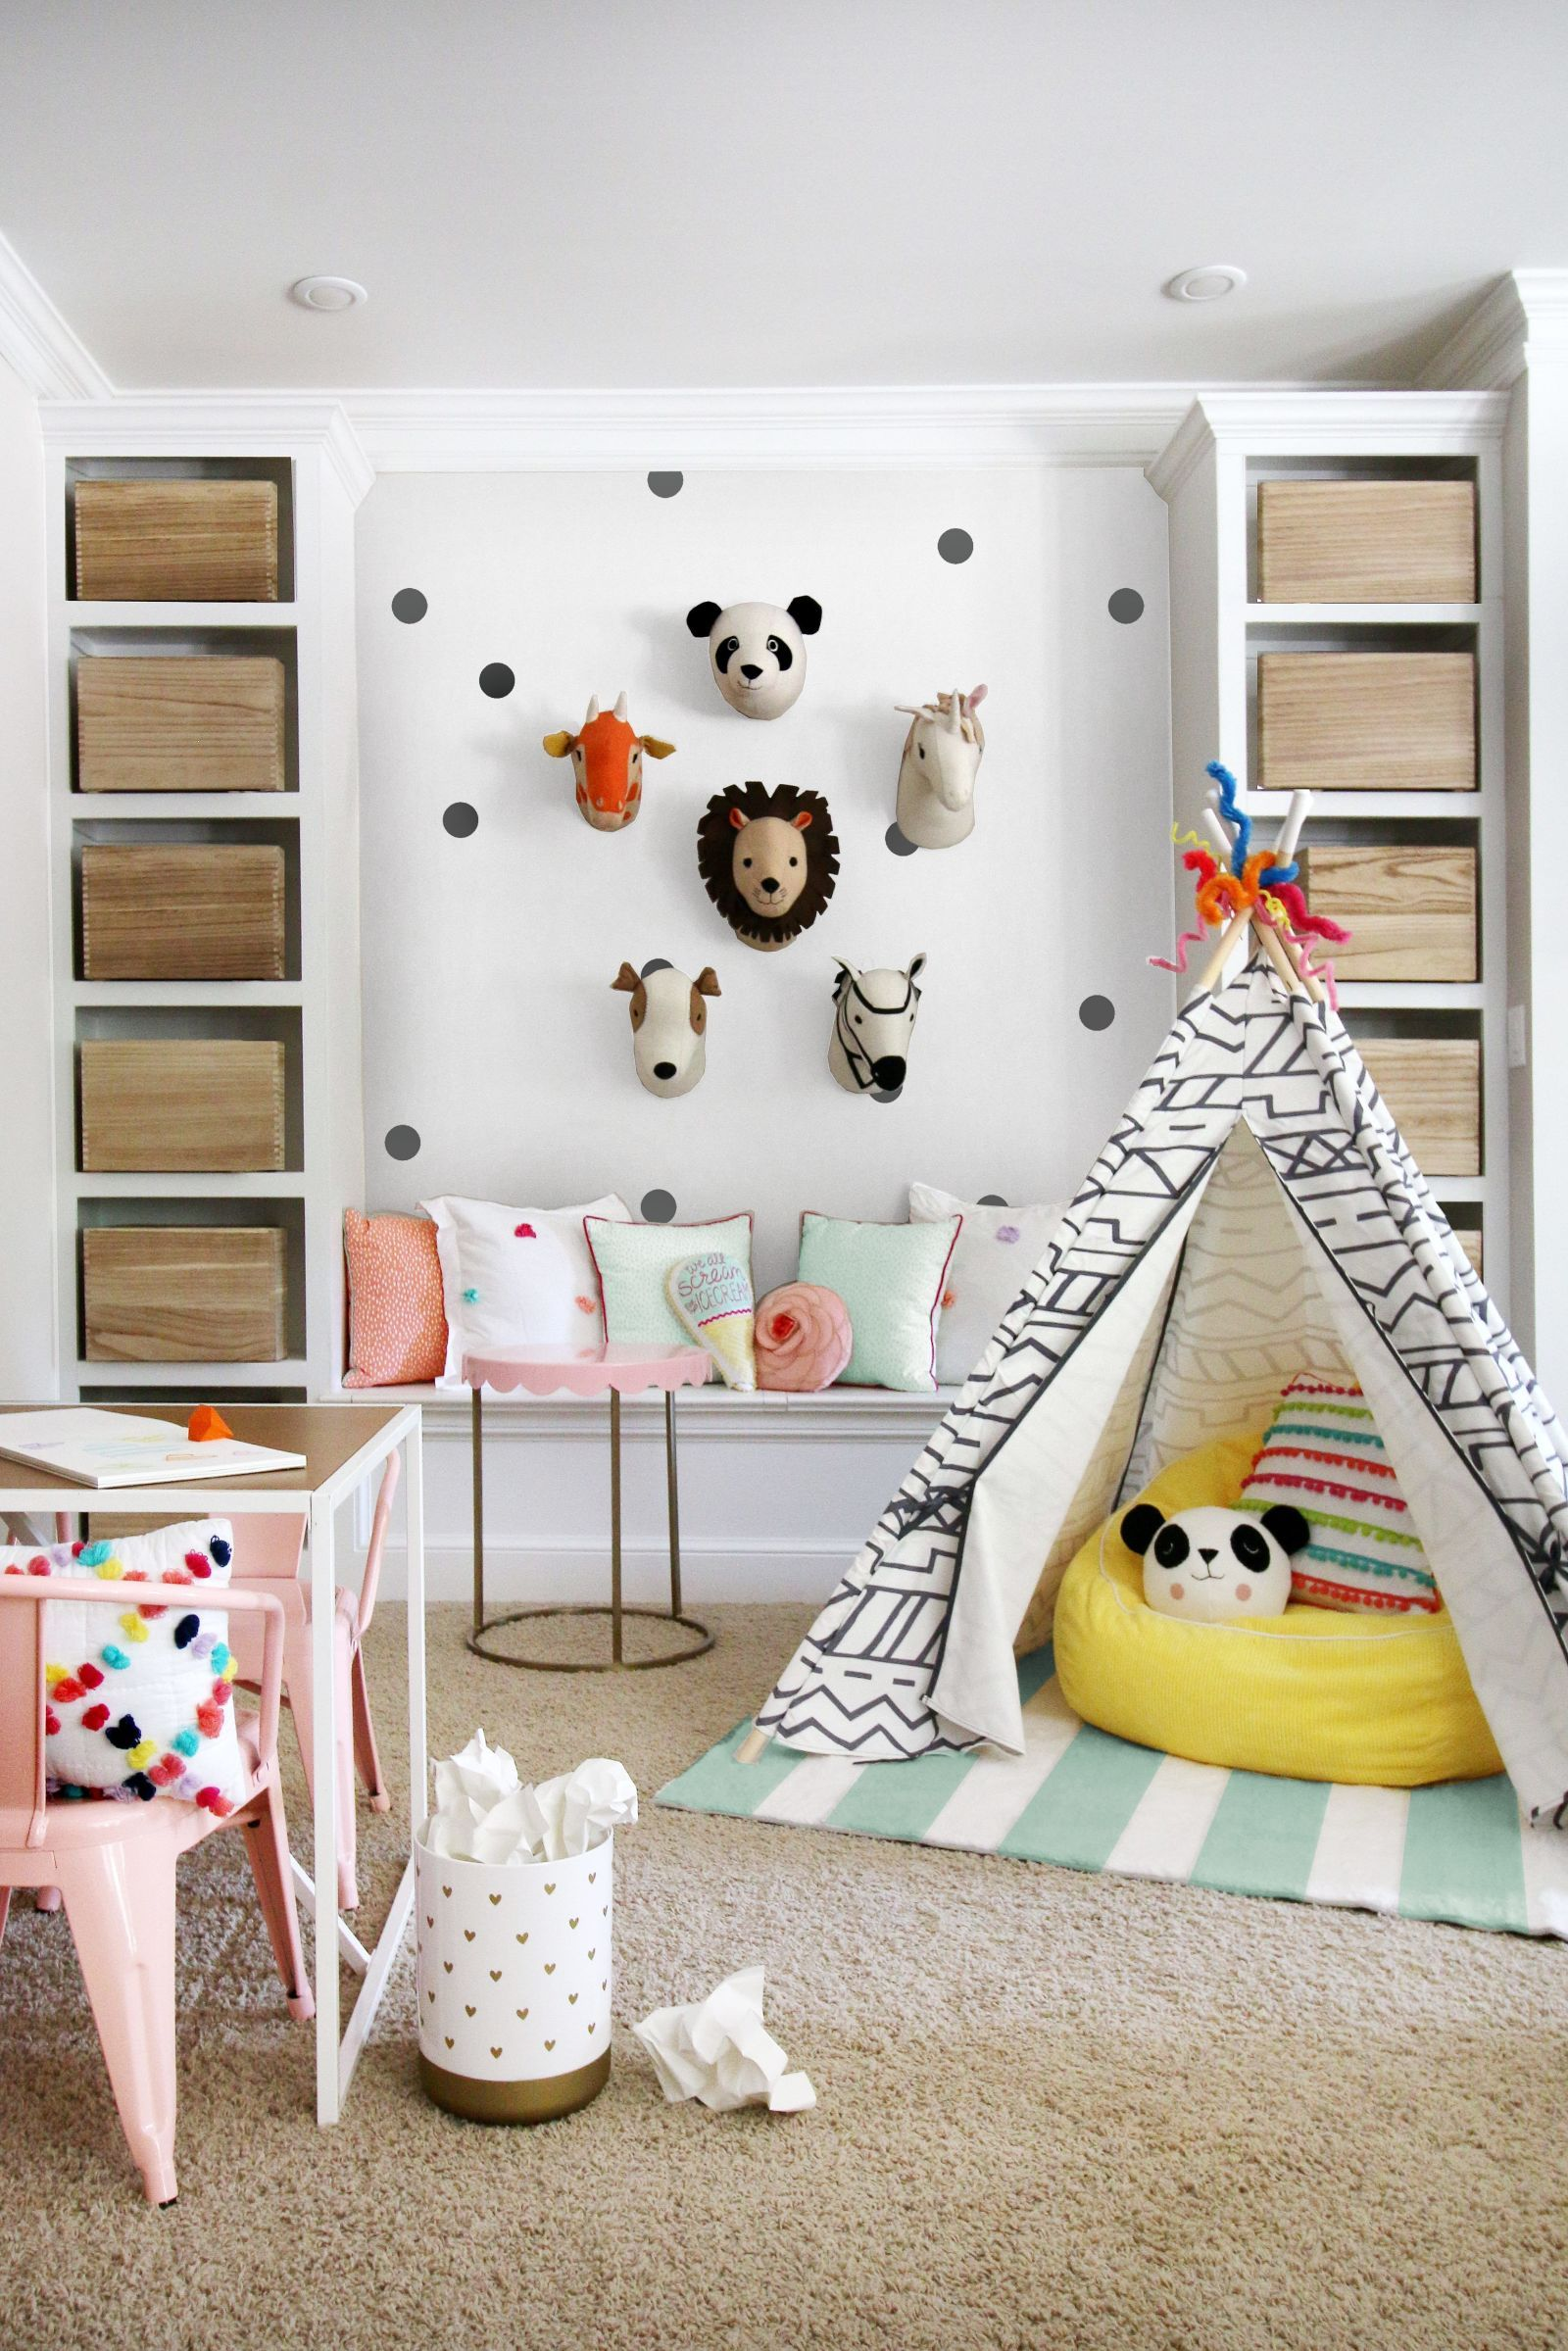 6 Totally Fresh Decorating Ideas For The Kids' Playroom   Playroom